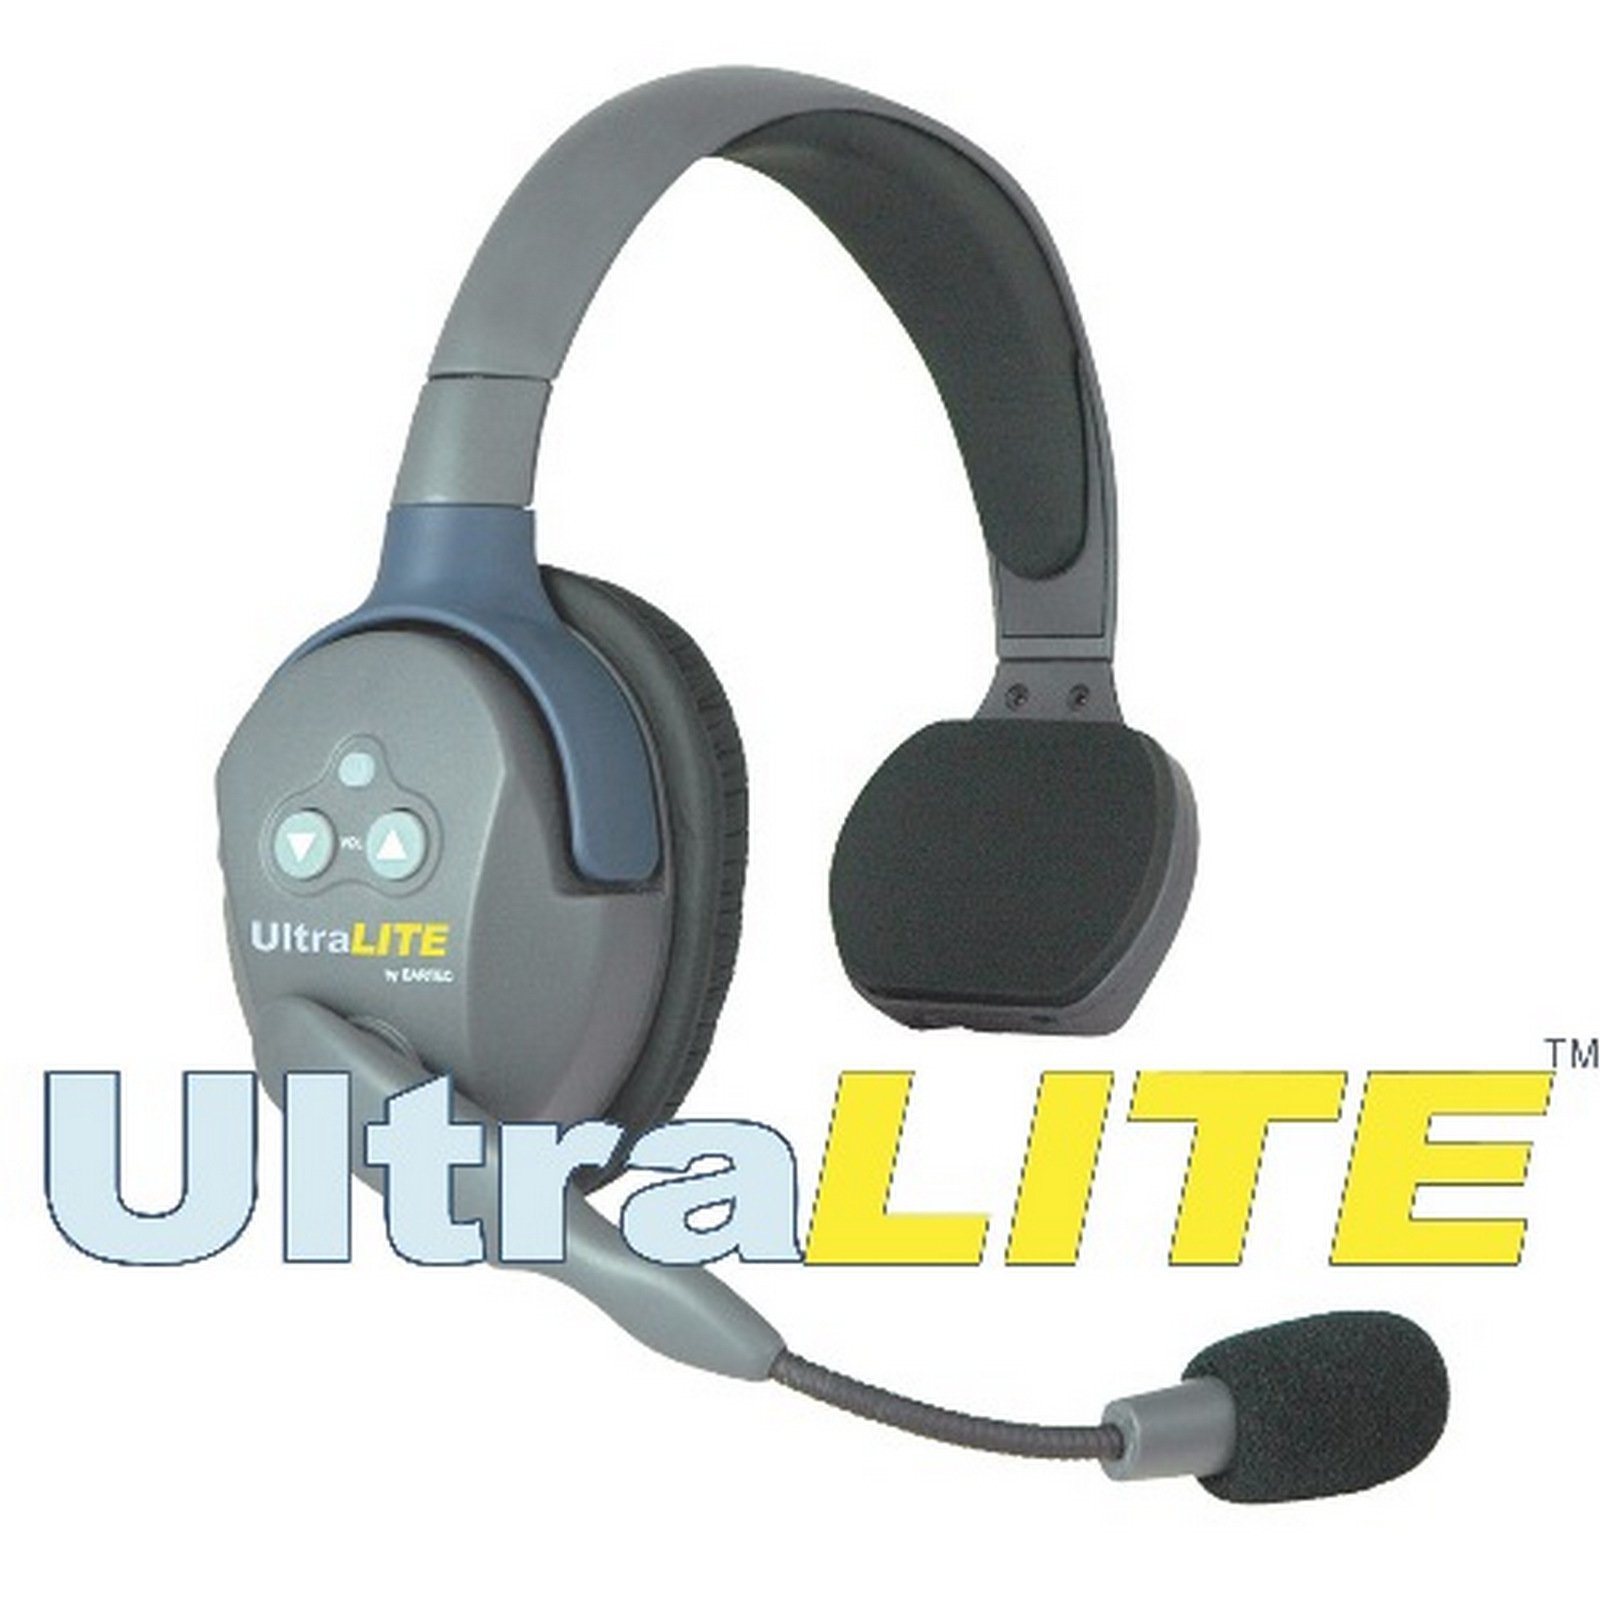 Eartec UL2S UltraLITE Wireless Microphone System with 1 Master and 1 Remote Headsets (2 Singles) by Eartec